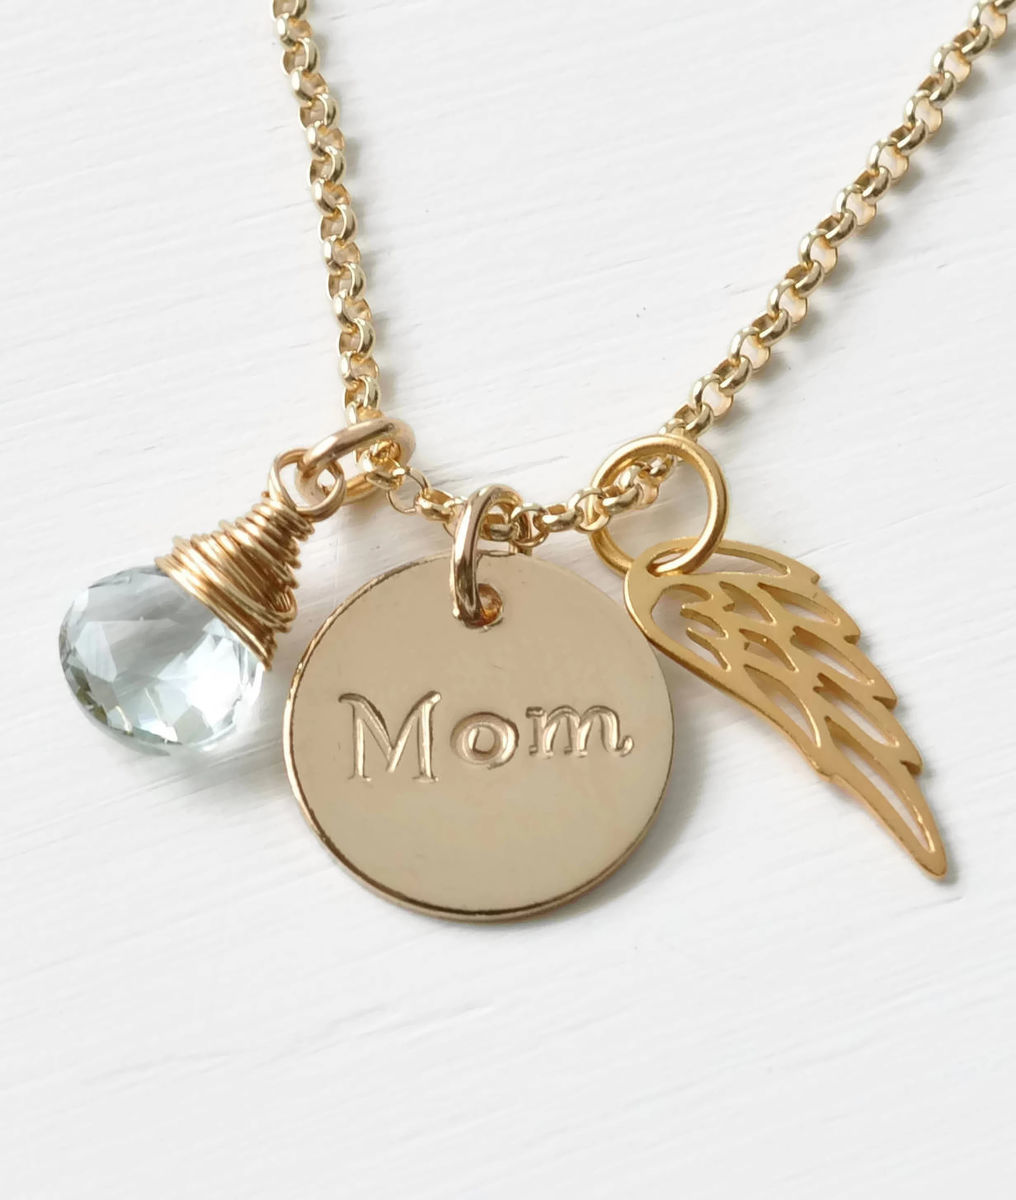 gave amazon angel charm baby gift us dp a co handmade child loss of uk keepsake miscarriage memorial an footprint god necklace